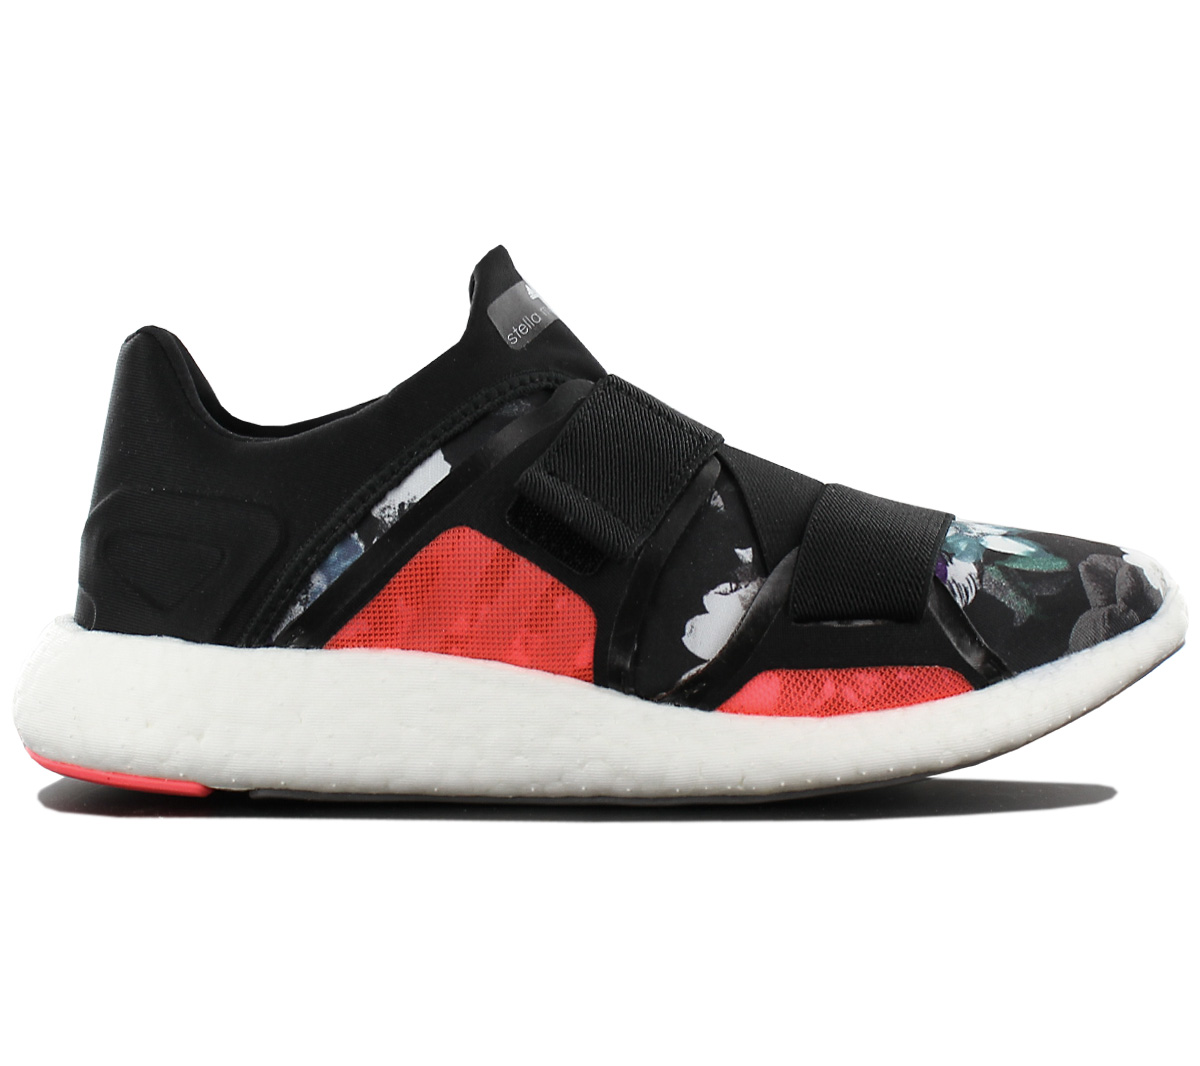 new concept 9f356 65ec1 Details about Adidas by Stella Mccartney Pure Boost Women's Running Shoes  Trainers BA8391 New